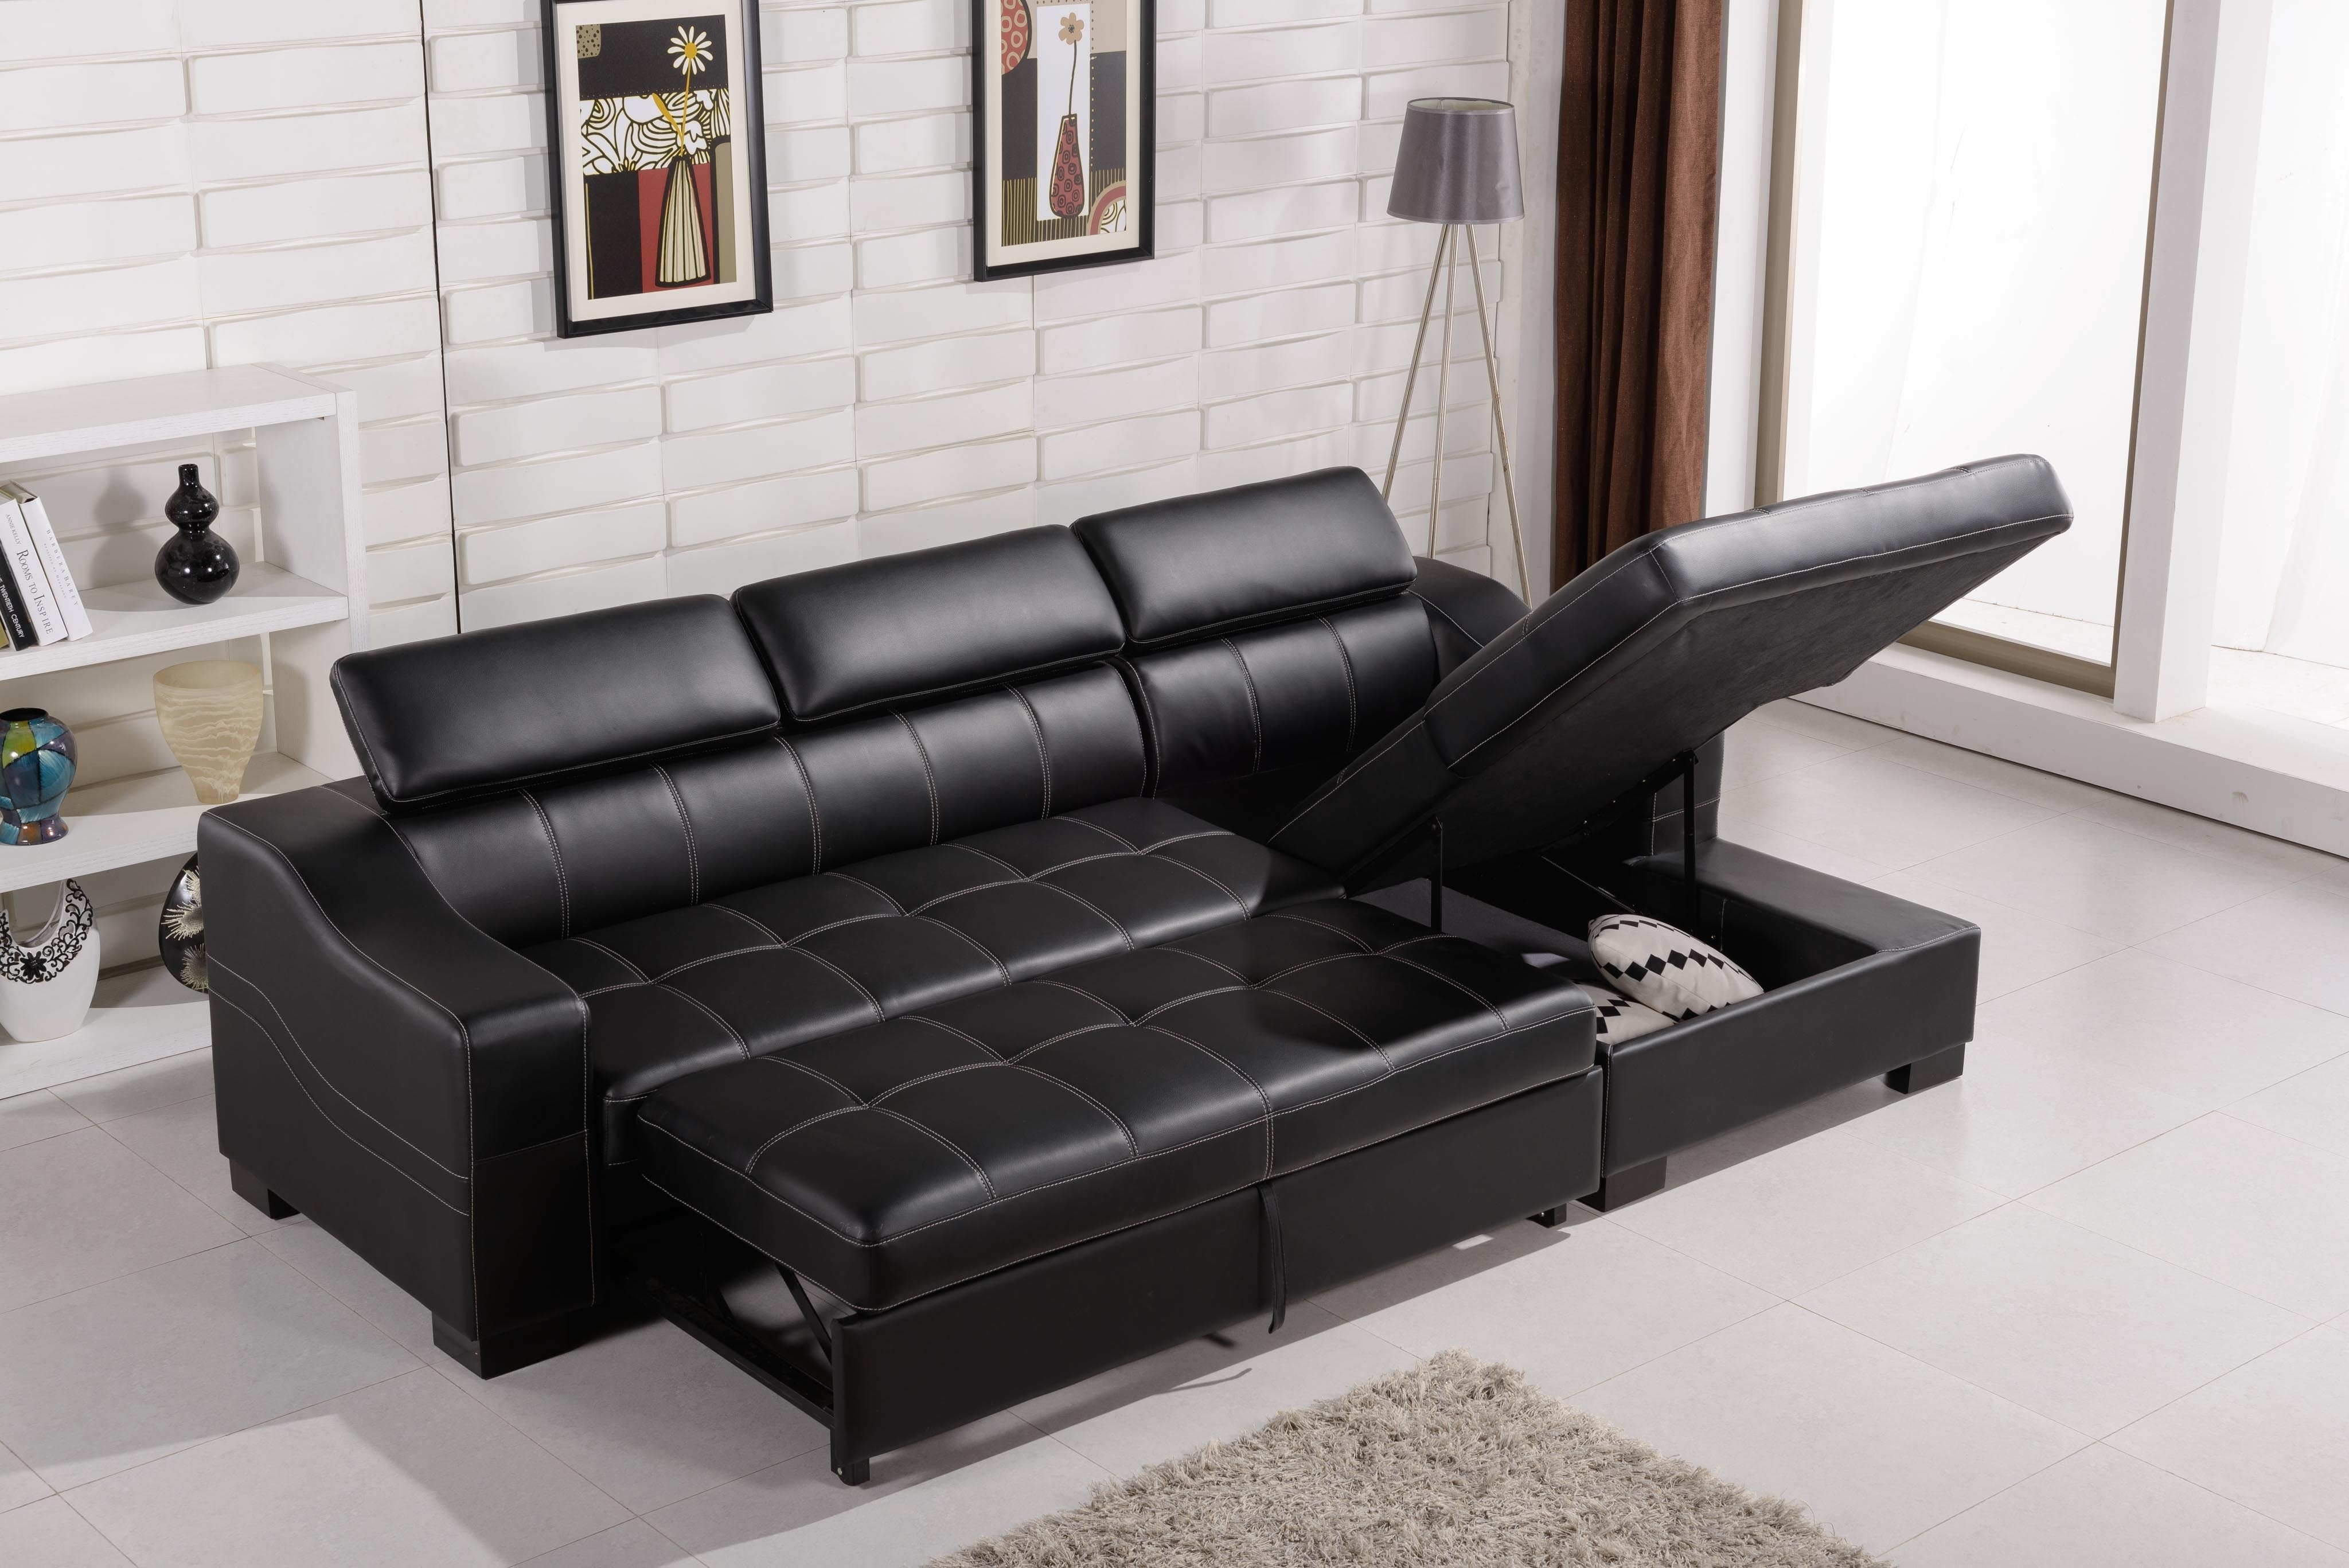 Sectional Sofa That Turns Into A Bed • Sofa Bed In Sectional Sofas That Turn Into Beds (View 8 of 10)